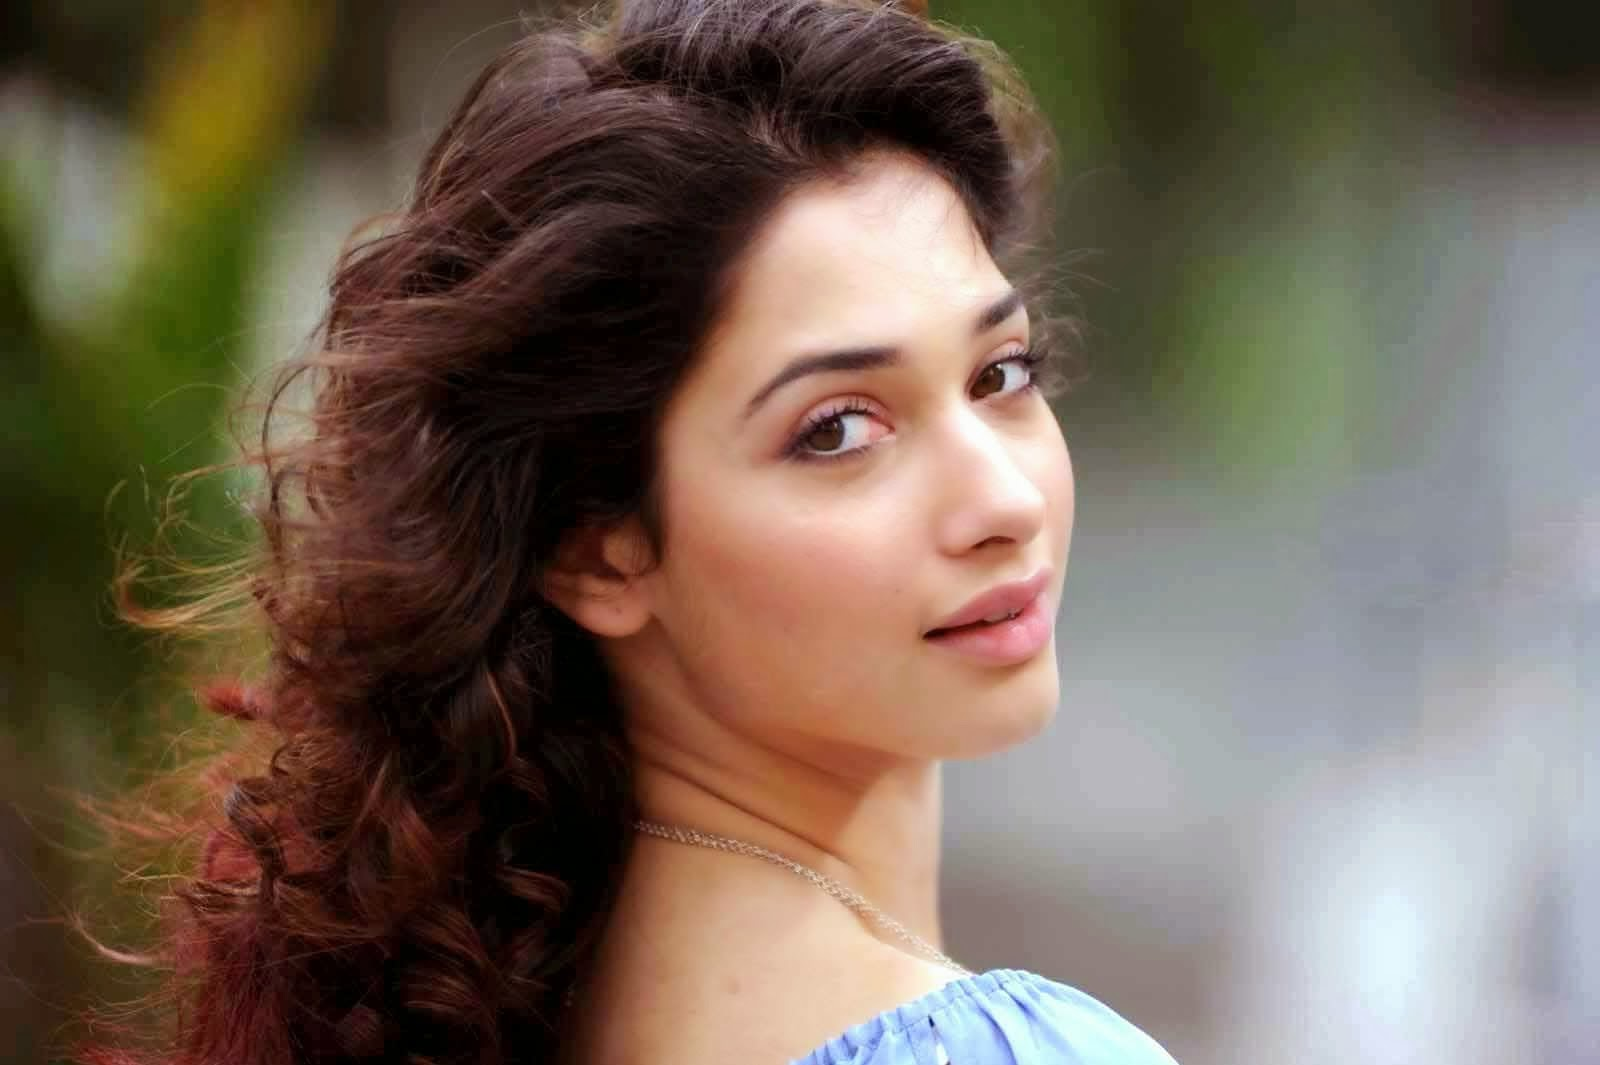 Tamana Hd: Wallpapers Joo: Tamanna Bbhati Full HD Wallpaers